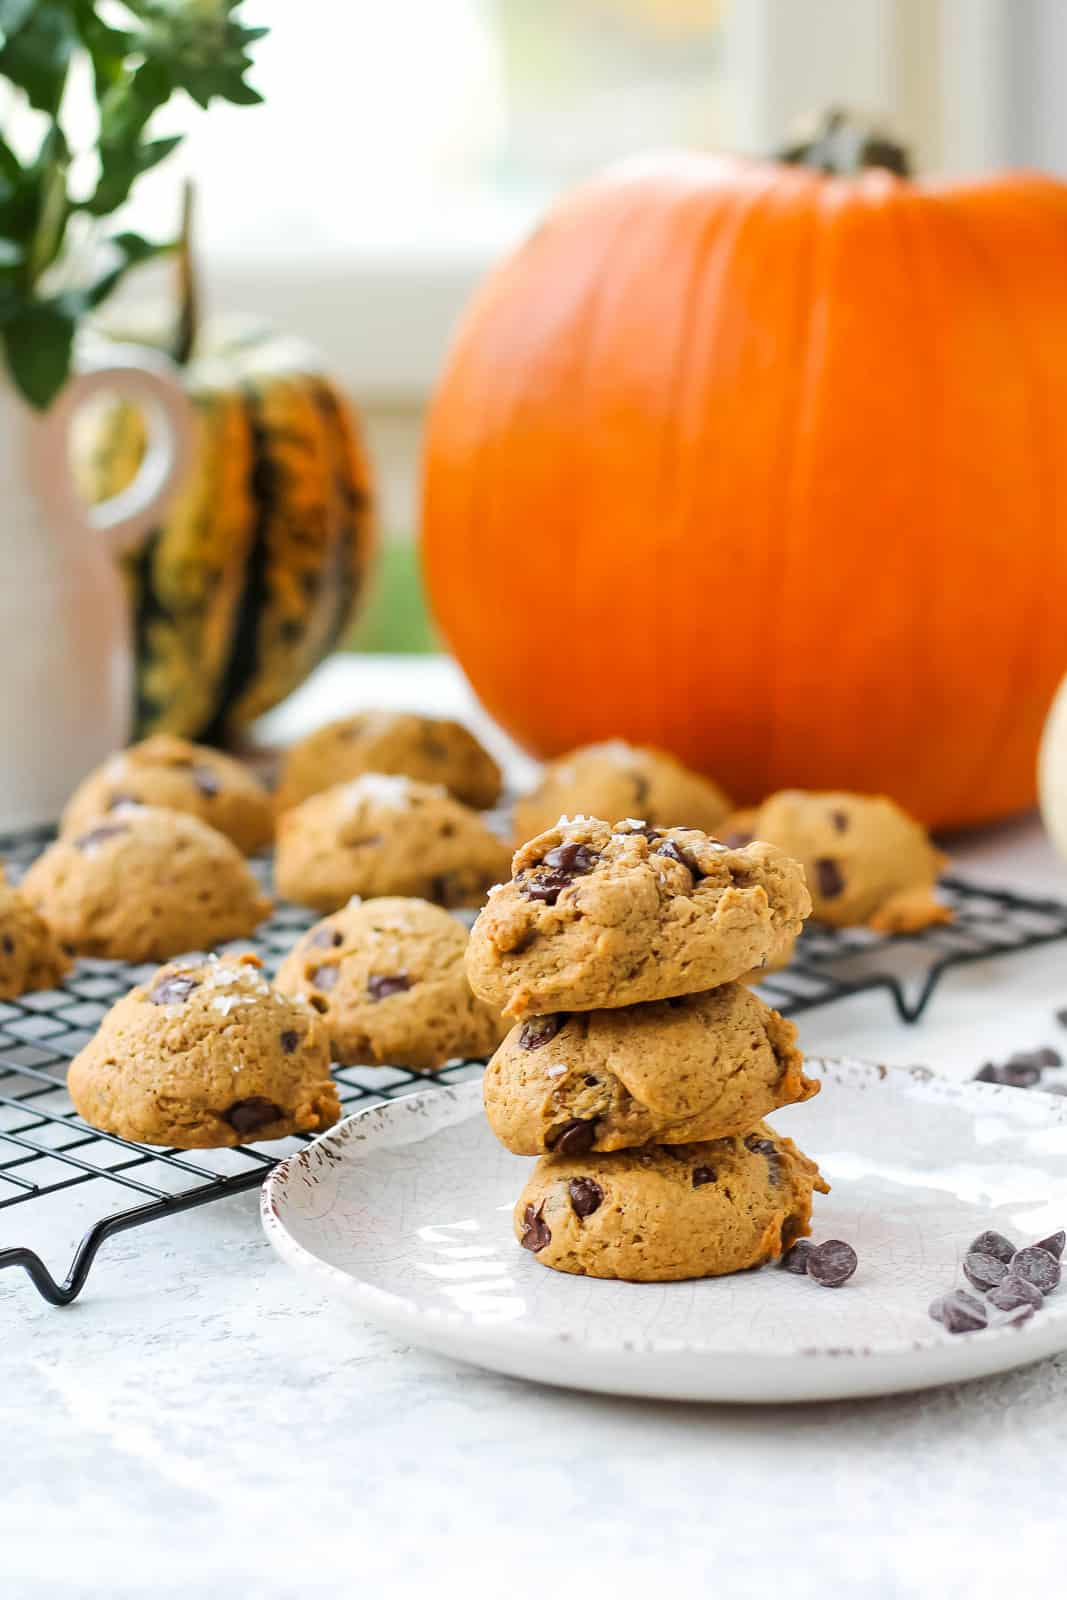 three vegan pumpkin chocolate chip cookies stacked on a white plate with a pumpkin in the background